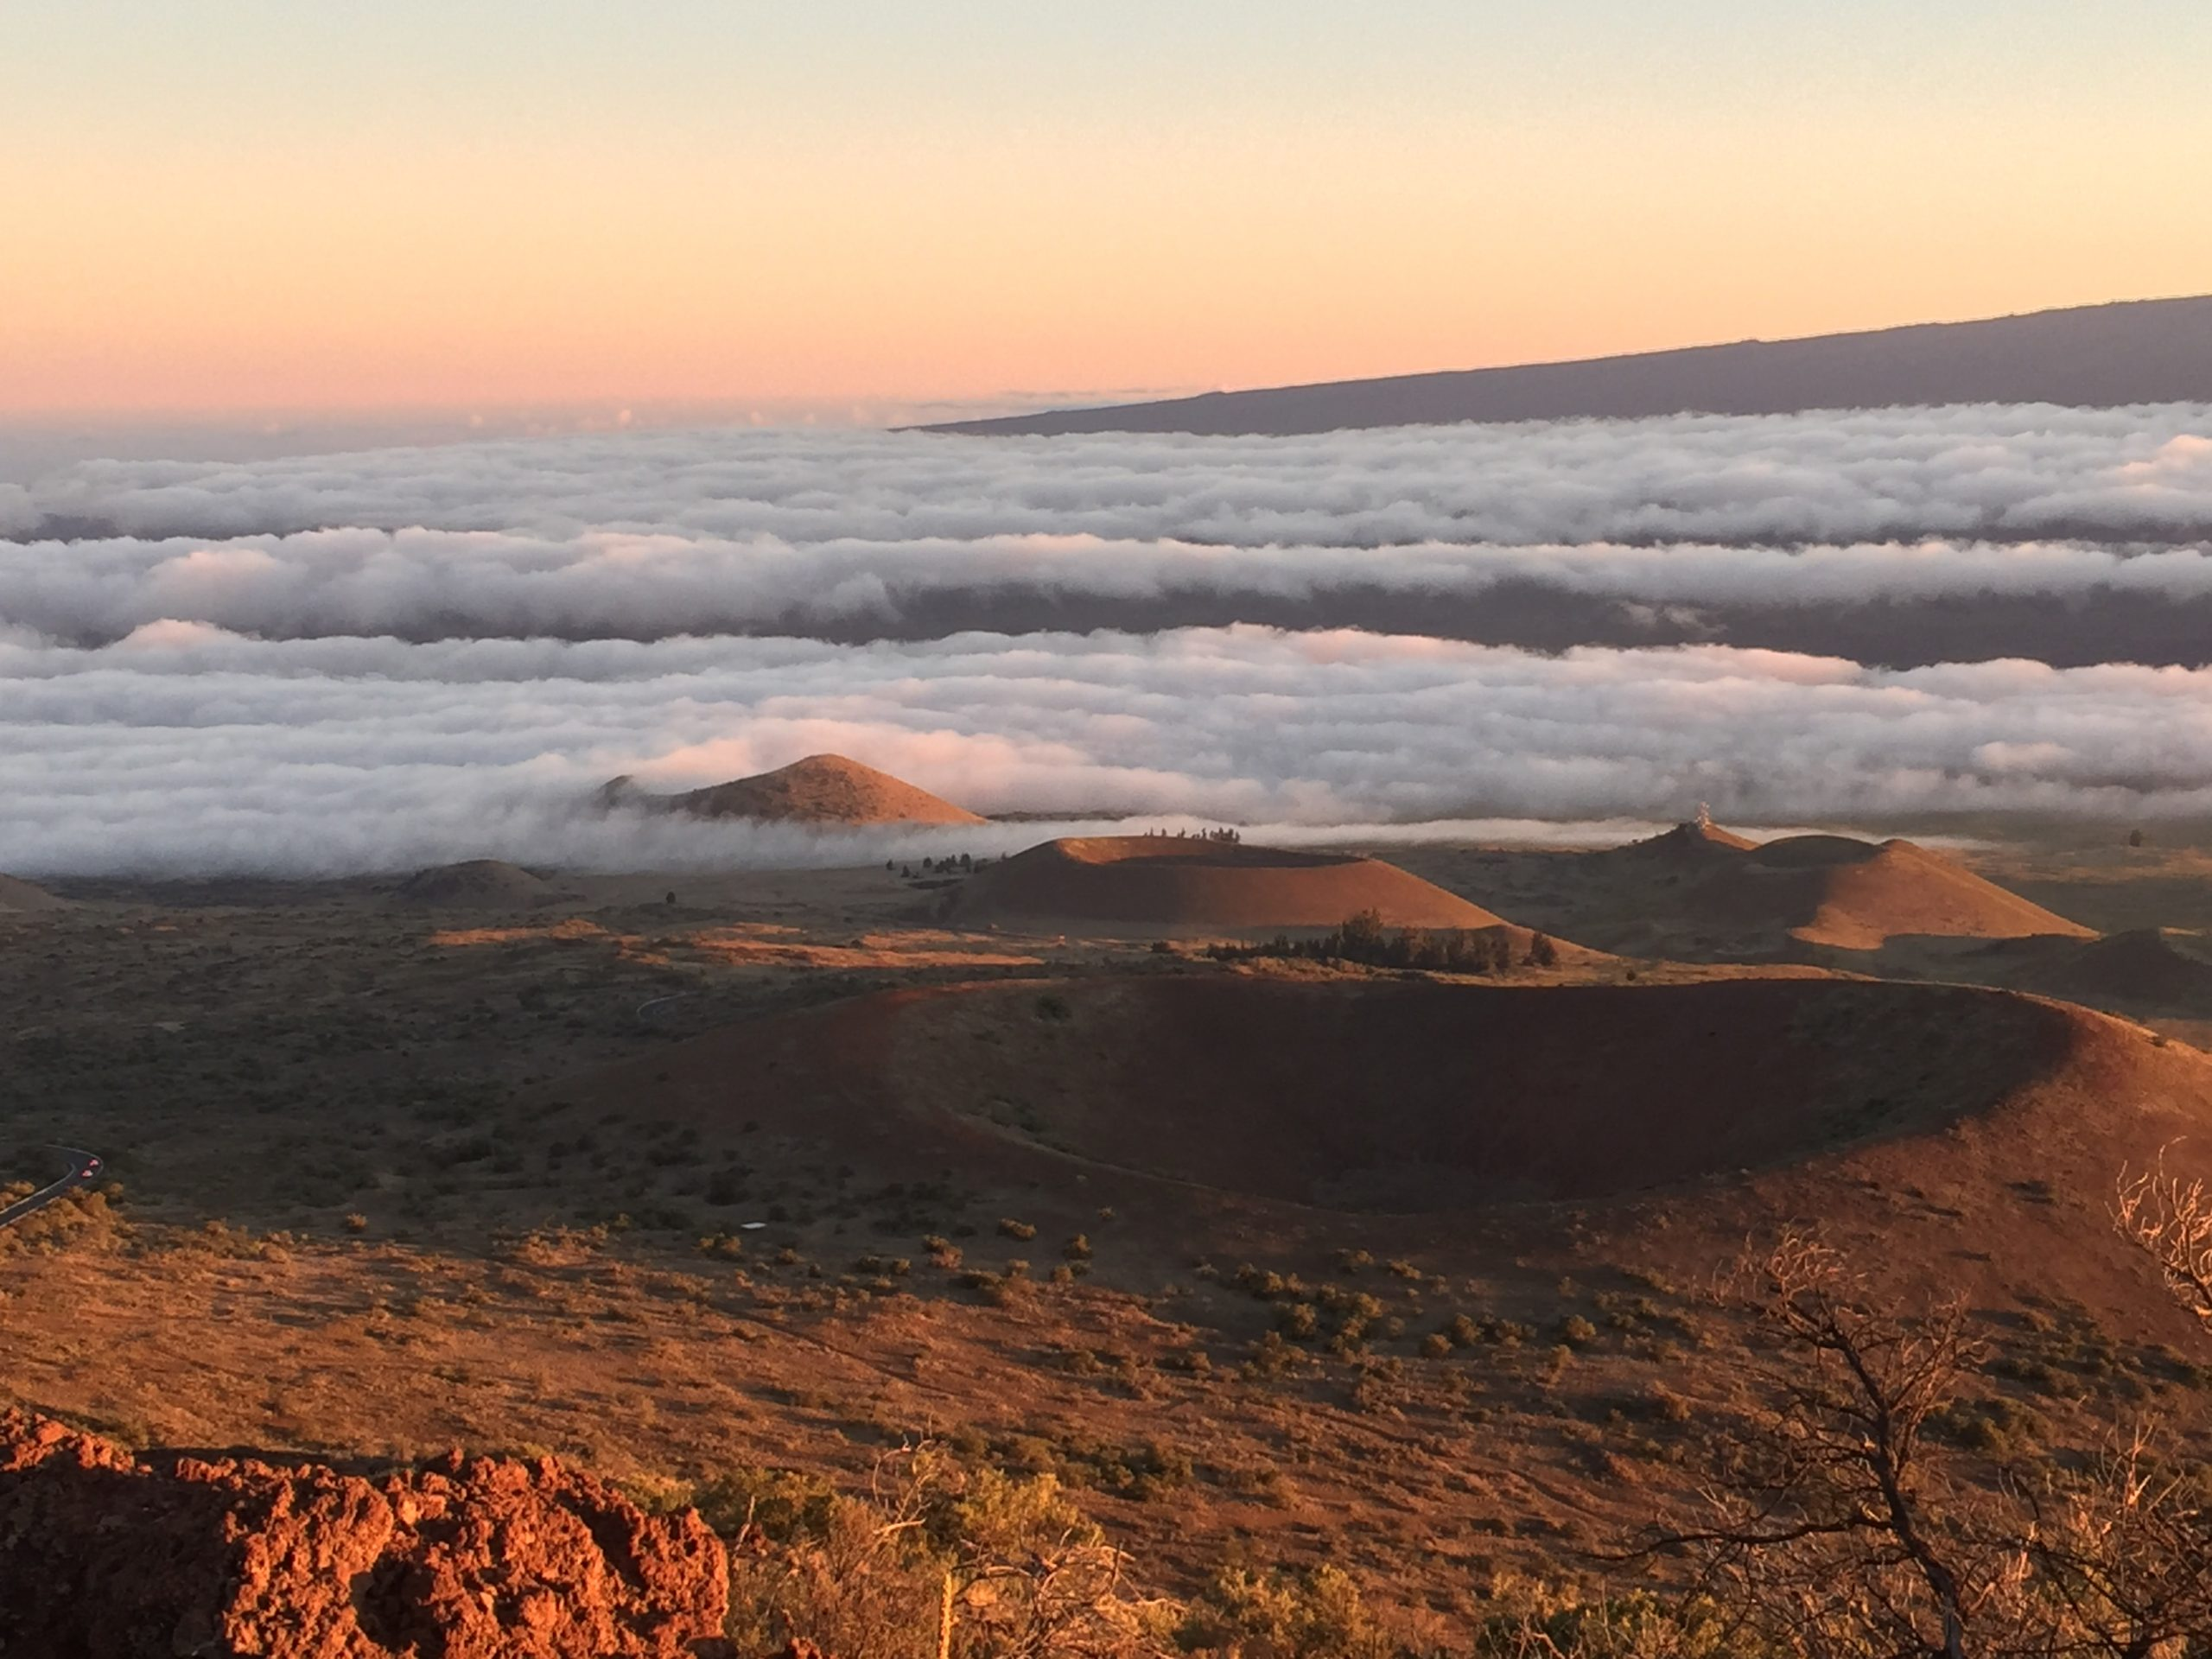 View from Mauna Kea volcano (Mauna Lao is to the right)